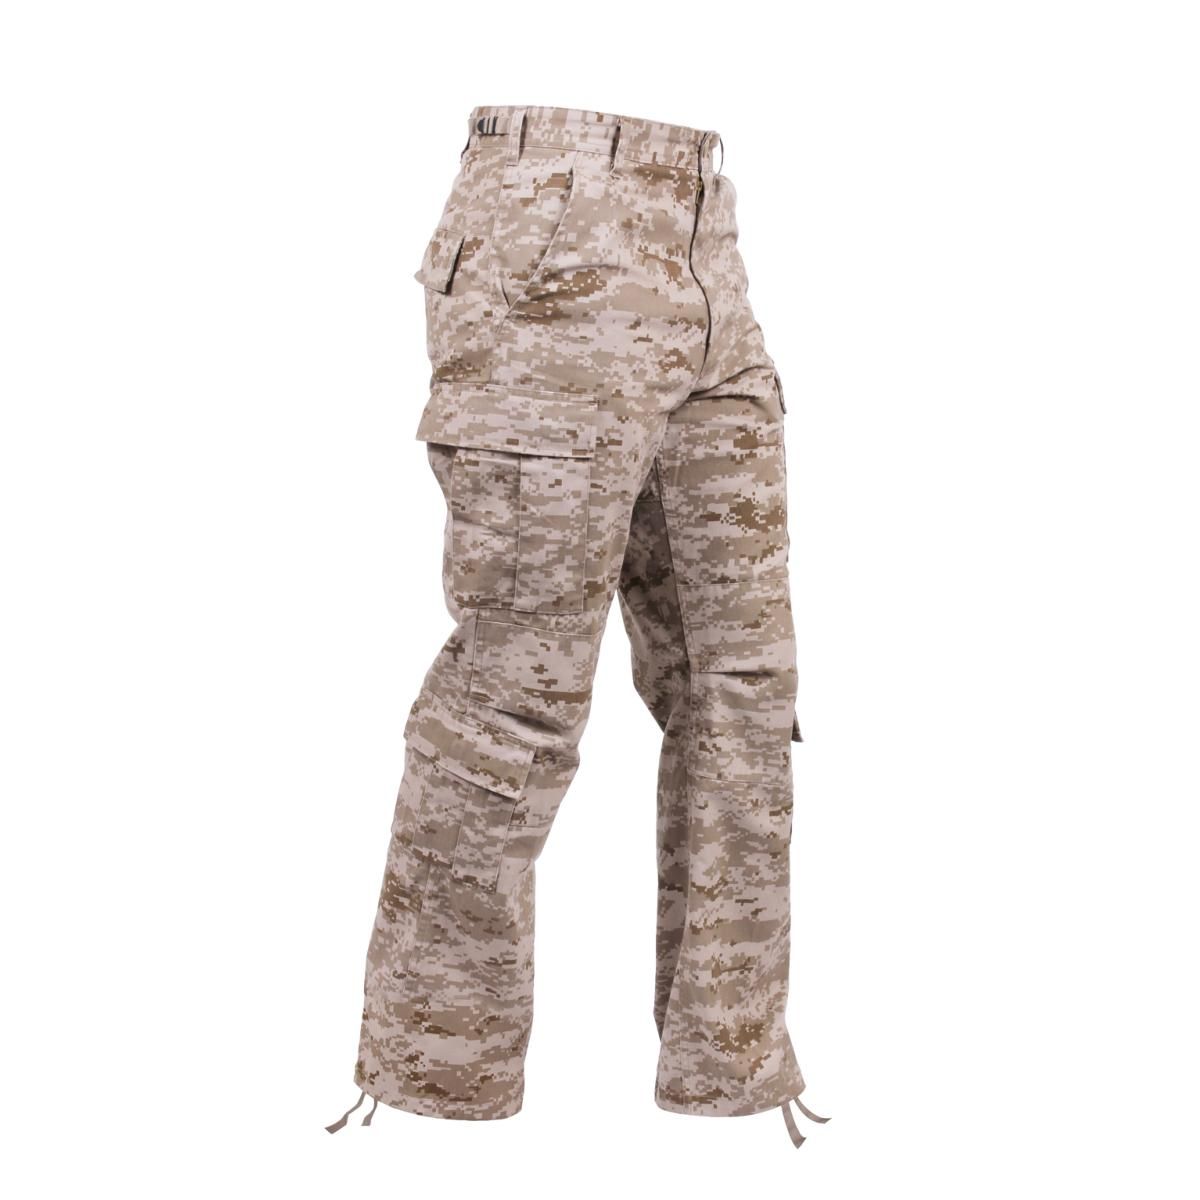 Rothco Vintage Camo Paratrooper Fatigue Pants, Desert Digital Camo